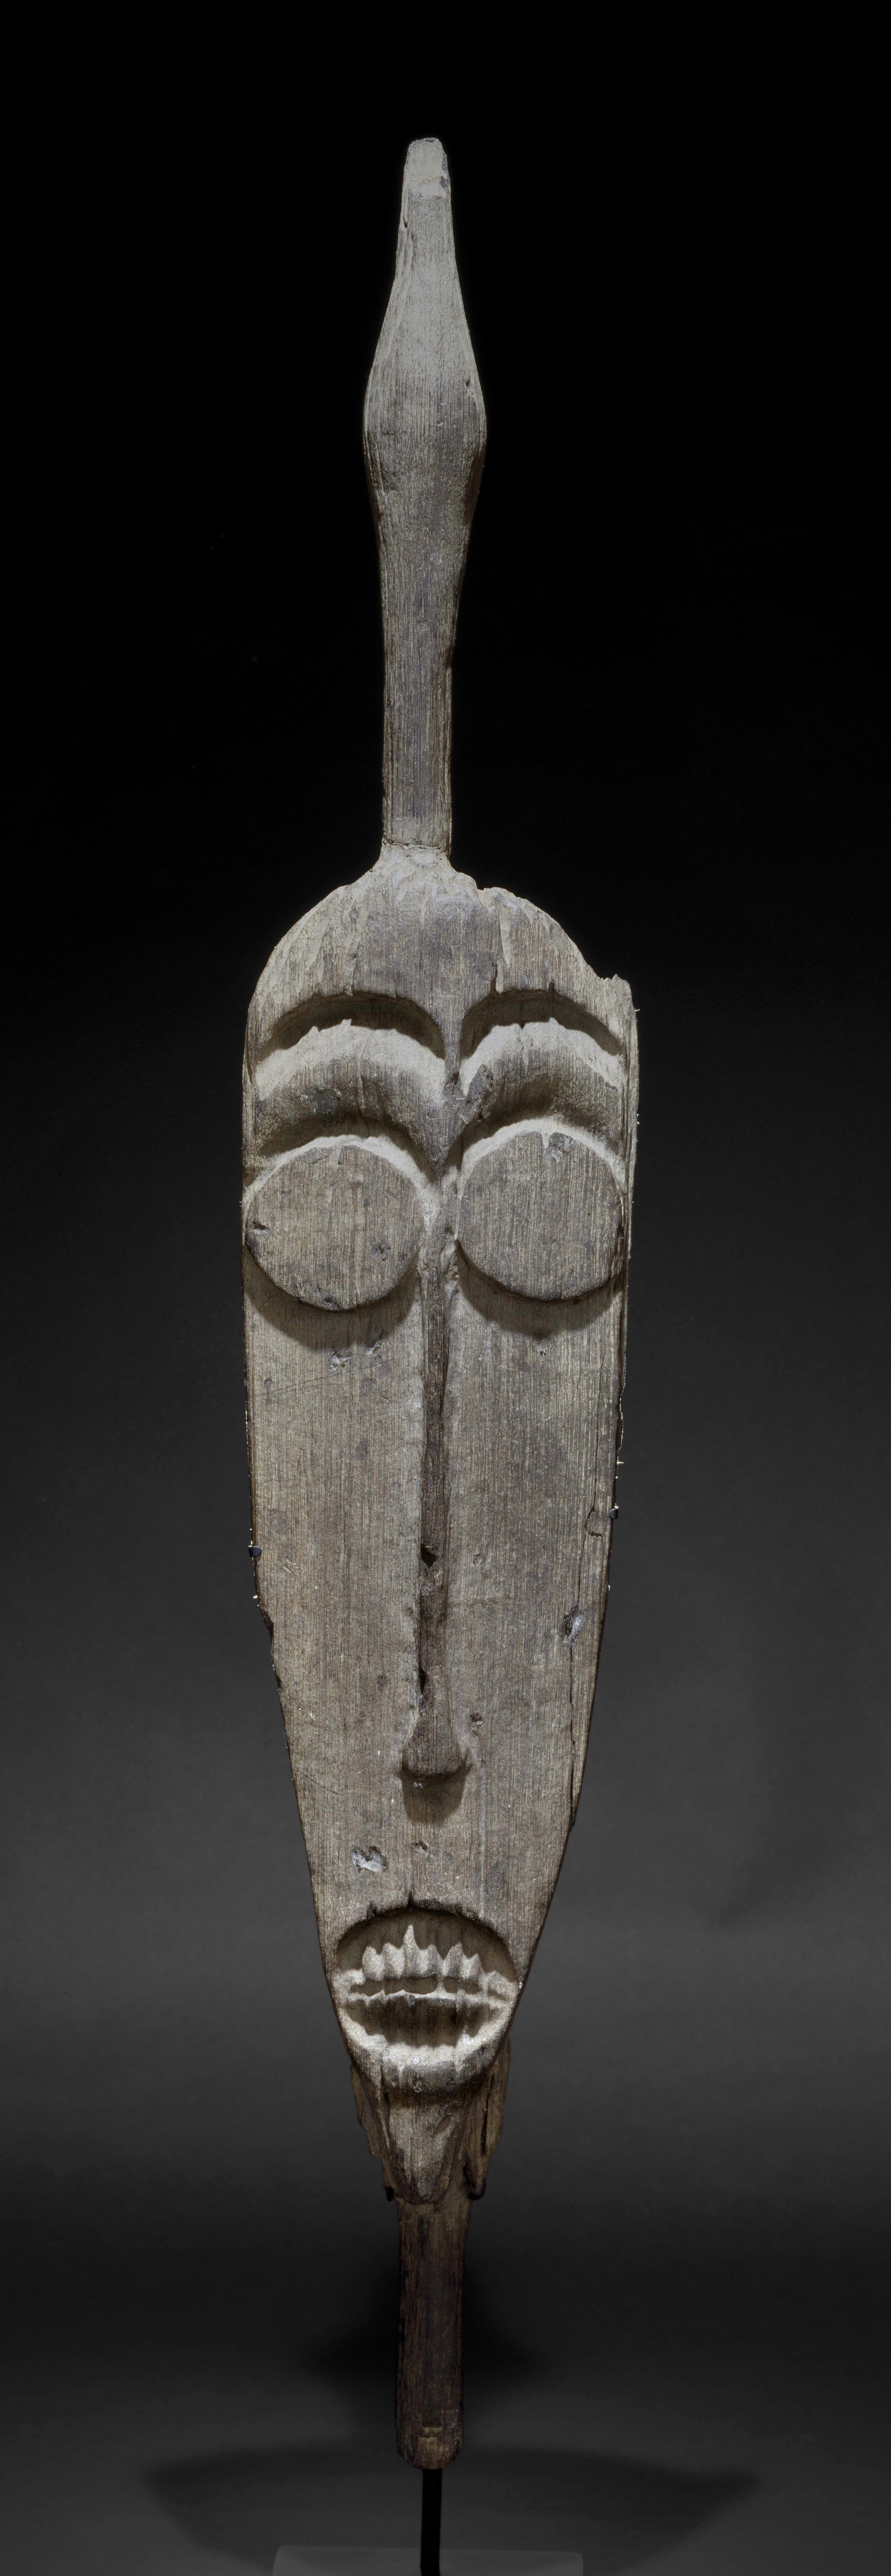 Large Carving of Human-Like Face © The Dallas Museum of Art | Texas, USA